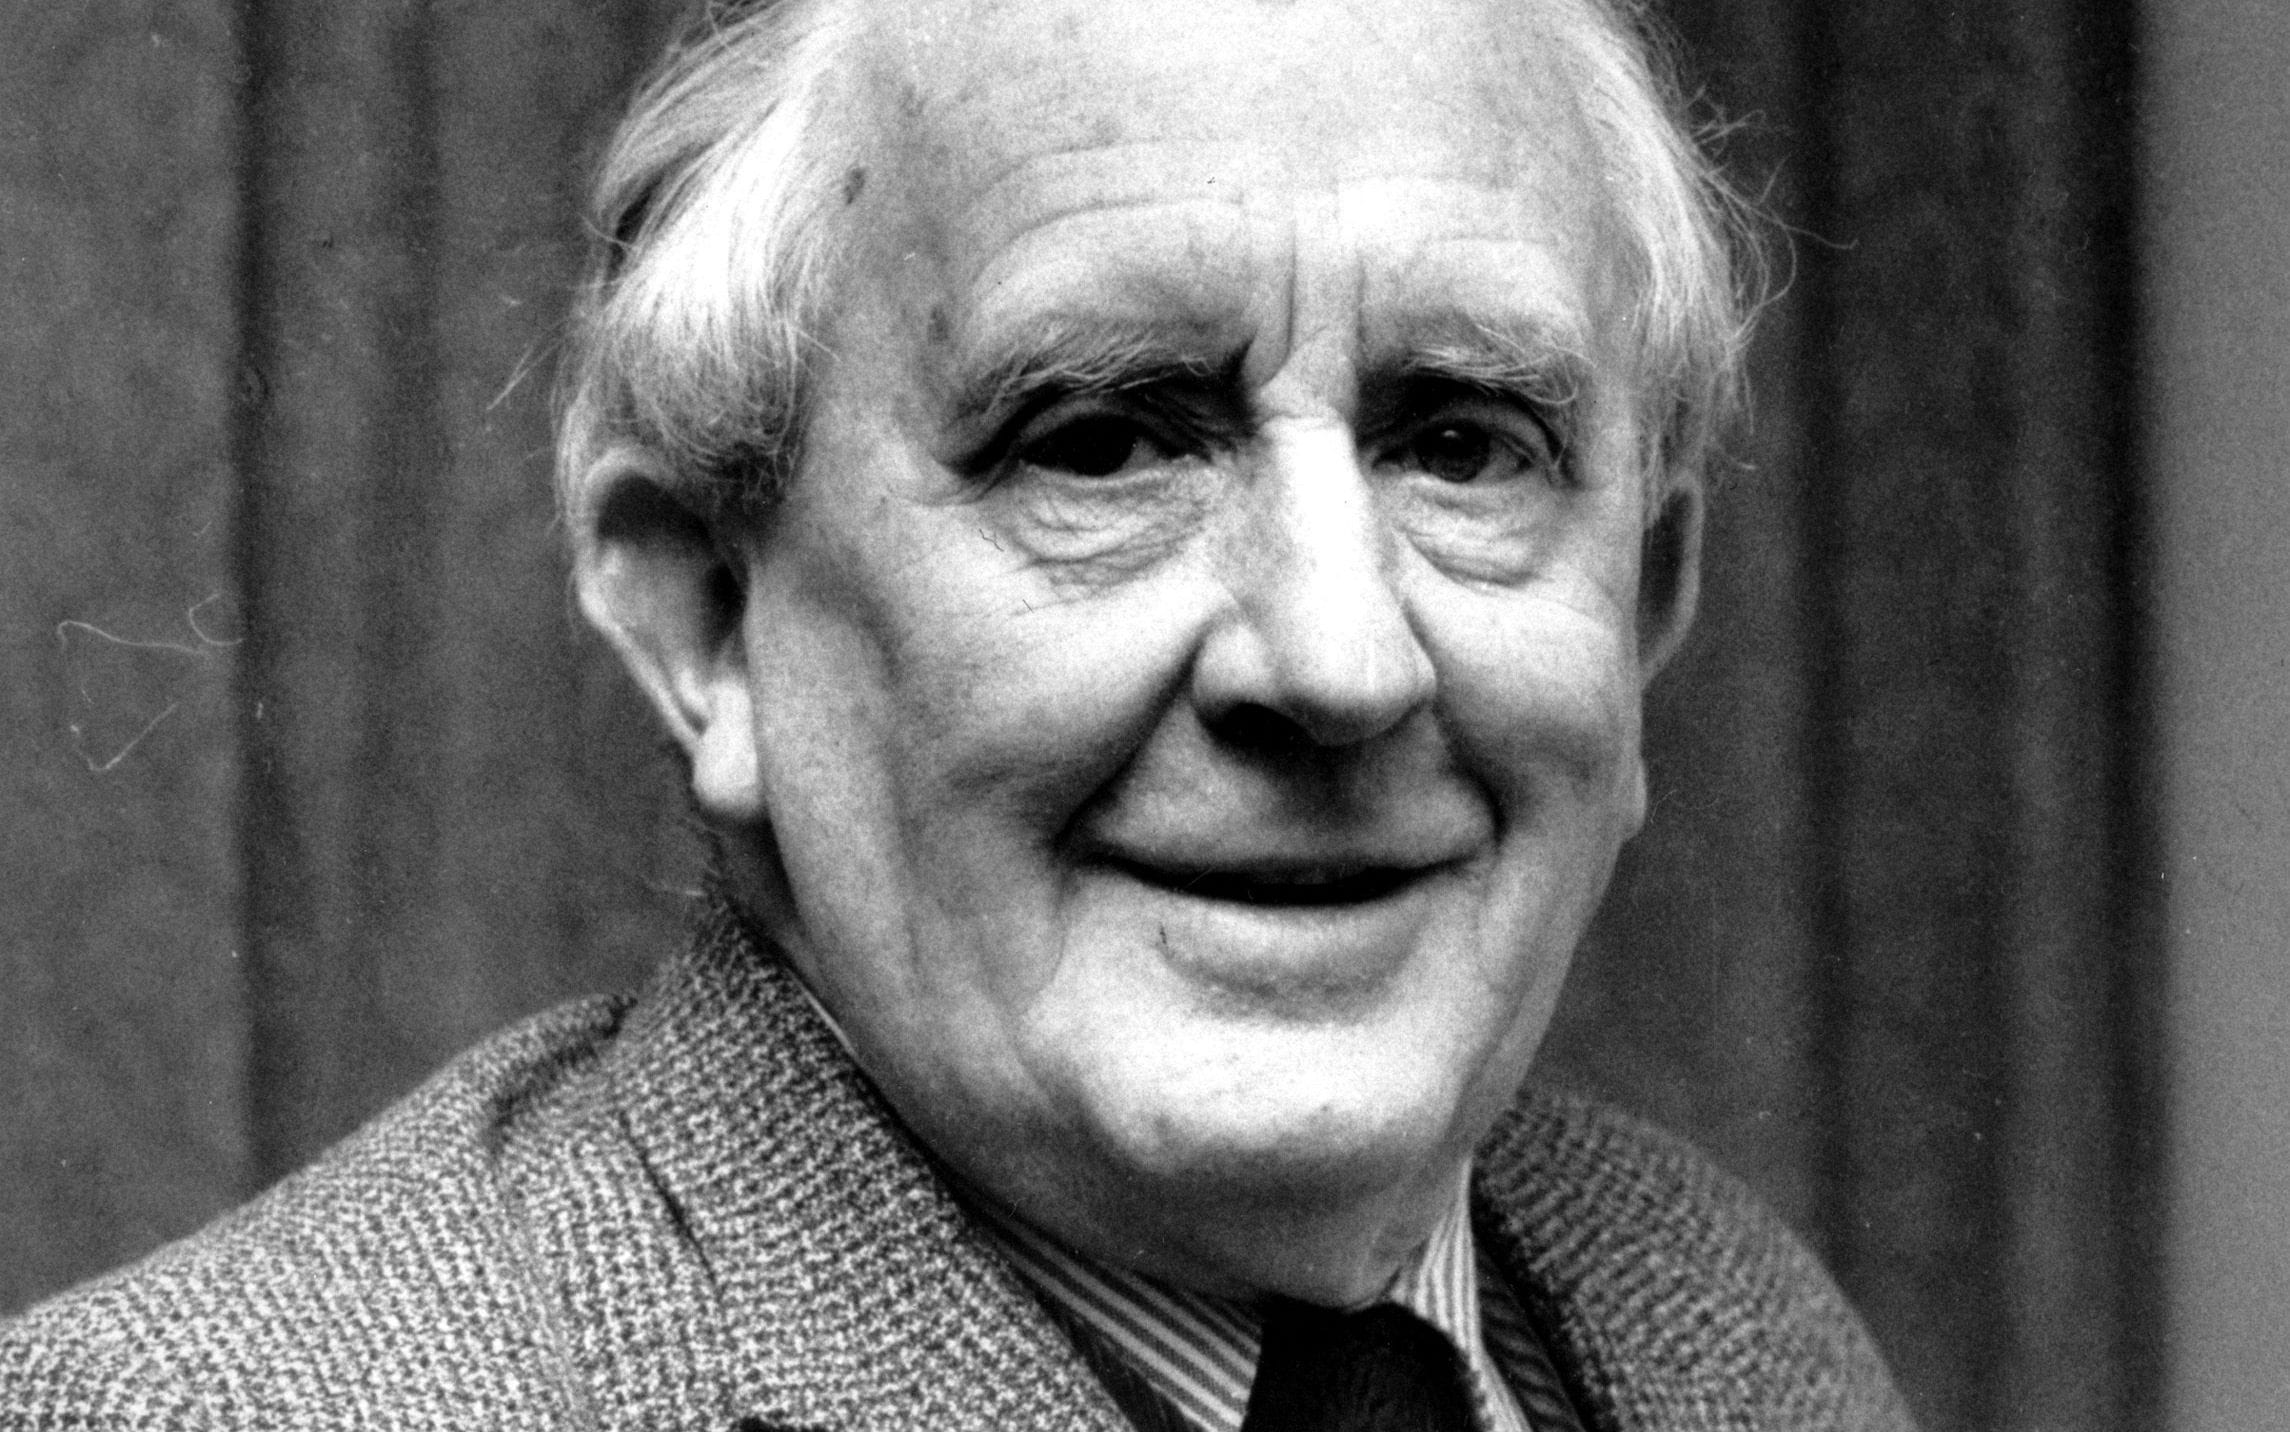 Books by J. R. R. Tolkien